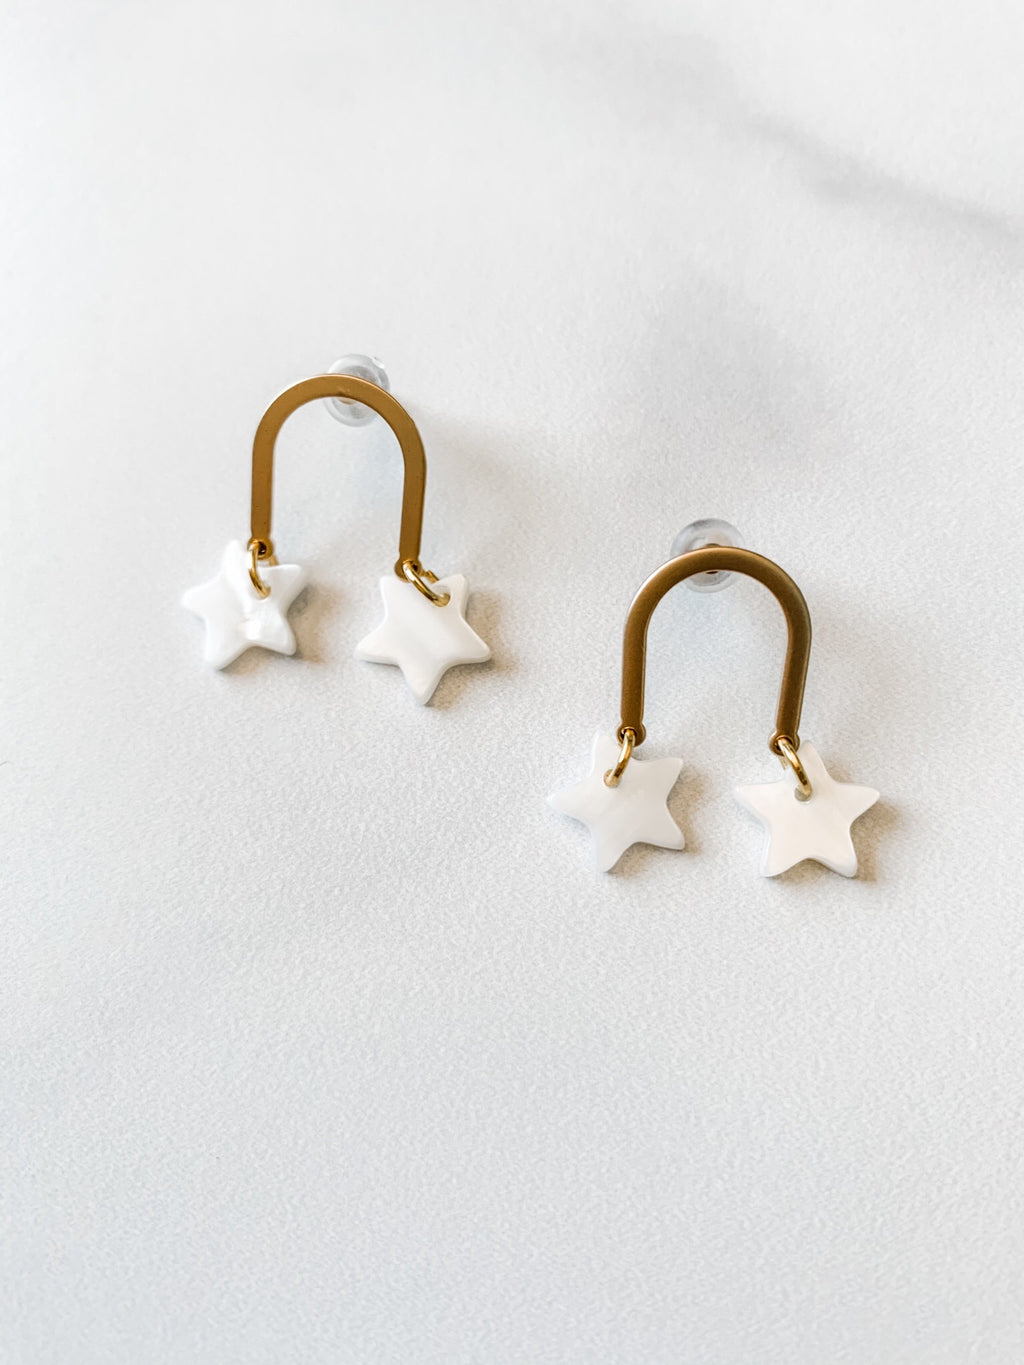 Stargazer Pearl Earrings - The Pretty Eclectic